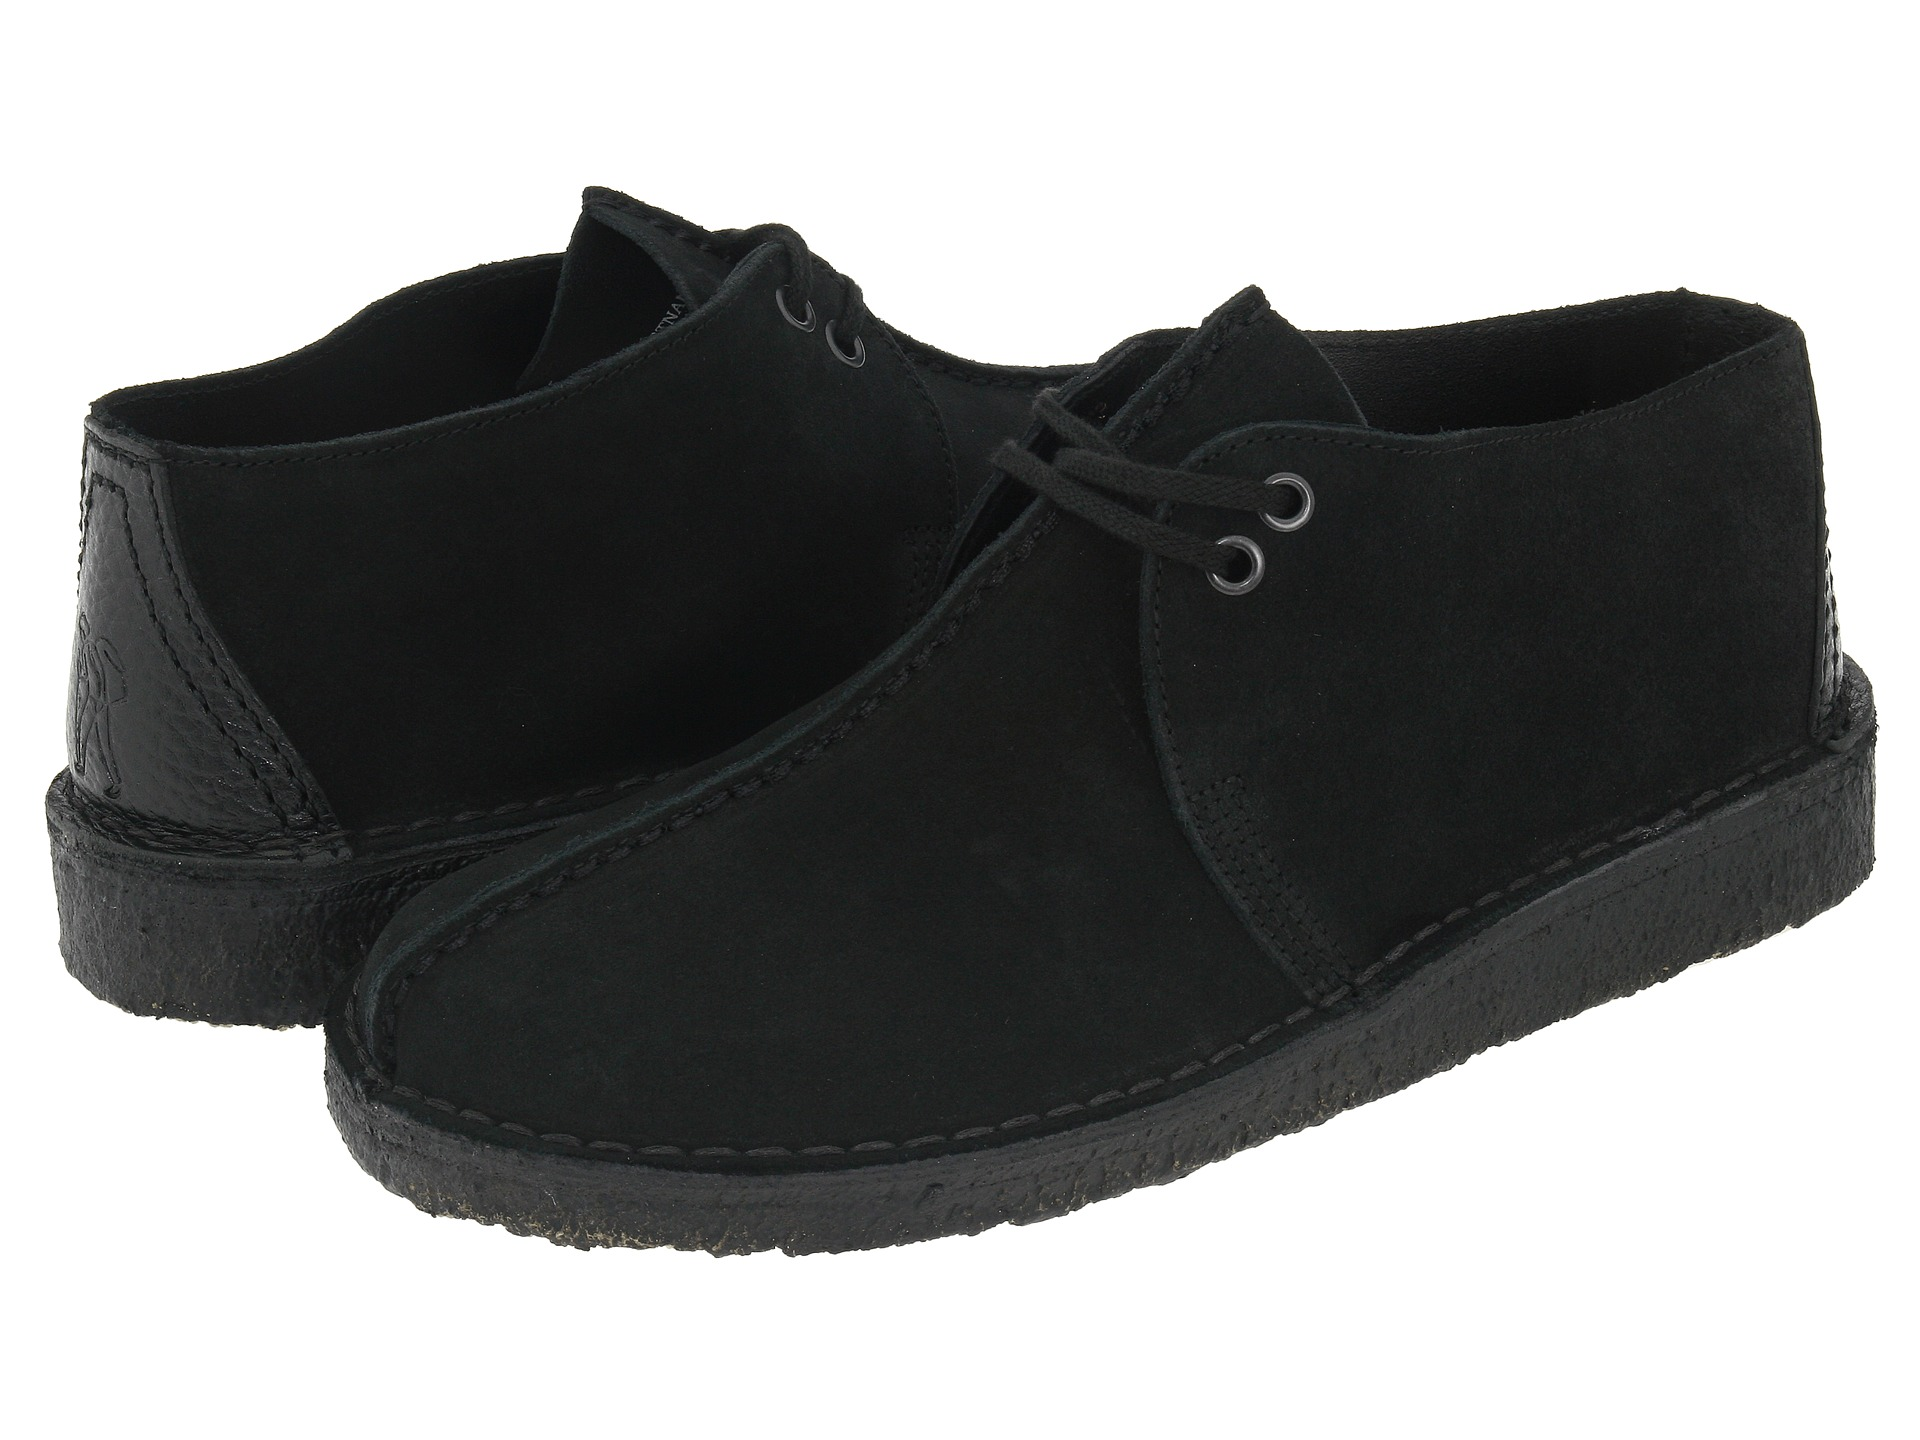 Cushions For Back Of Shoes picture on clarks desert trek black suede with Cushions For Back Of Shoes, sofa 2ce72ec6f12227ef2cf37324f76b0e10